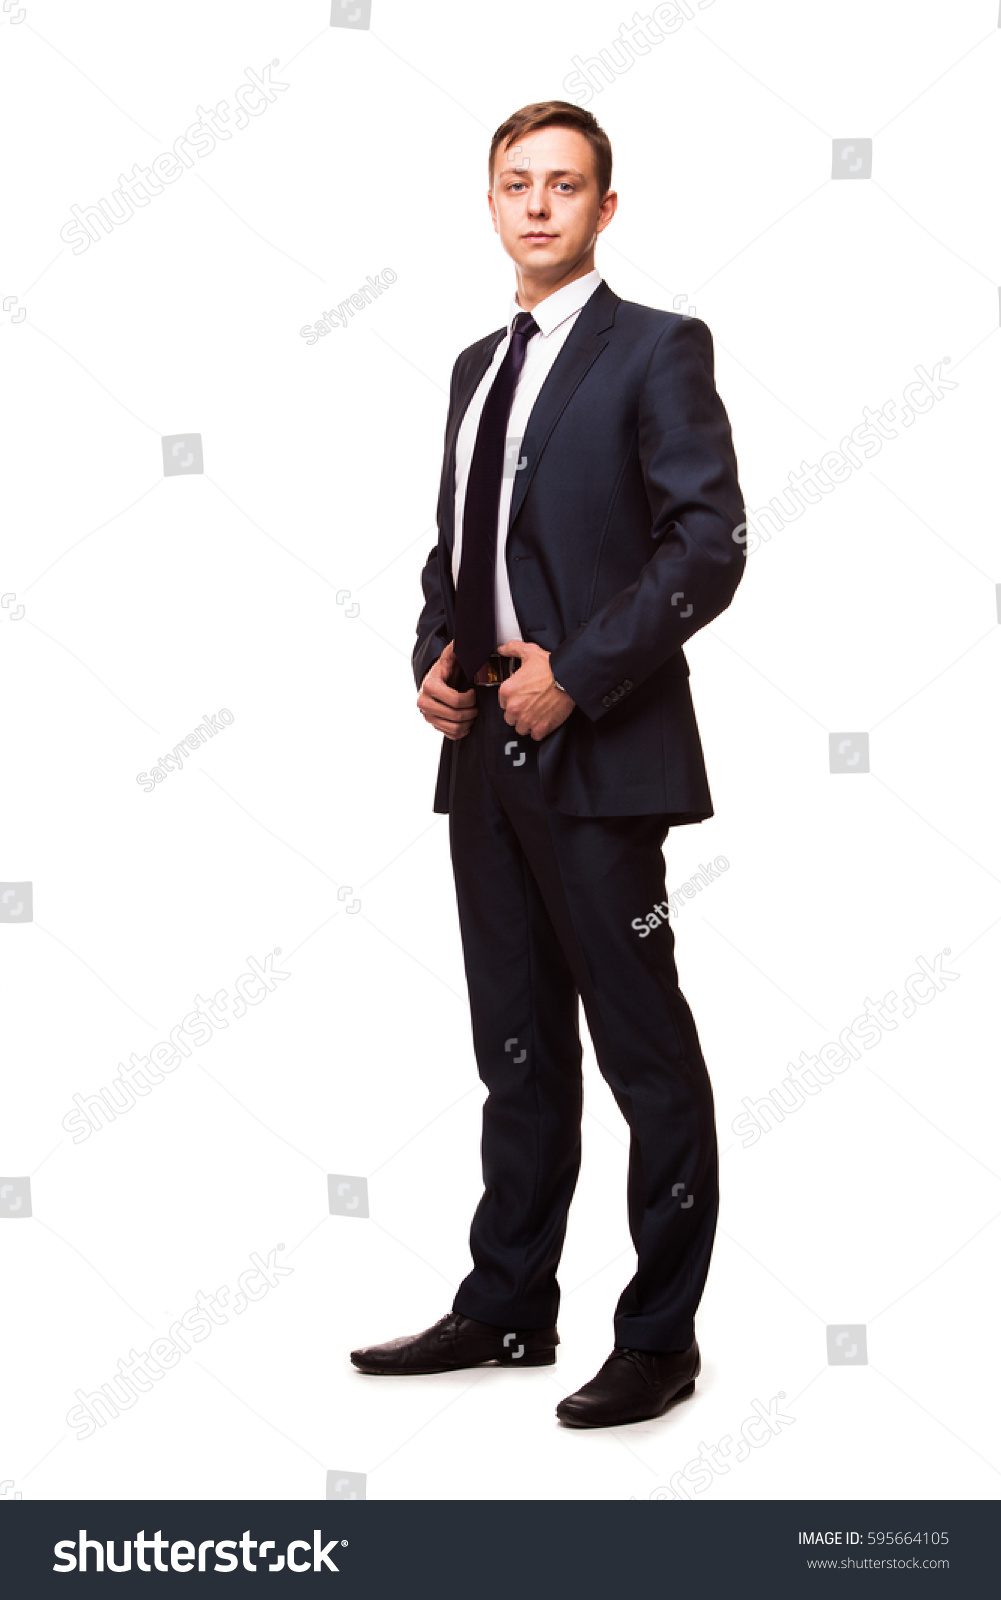 stylish young man suit tie business stock photo 595664105